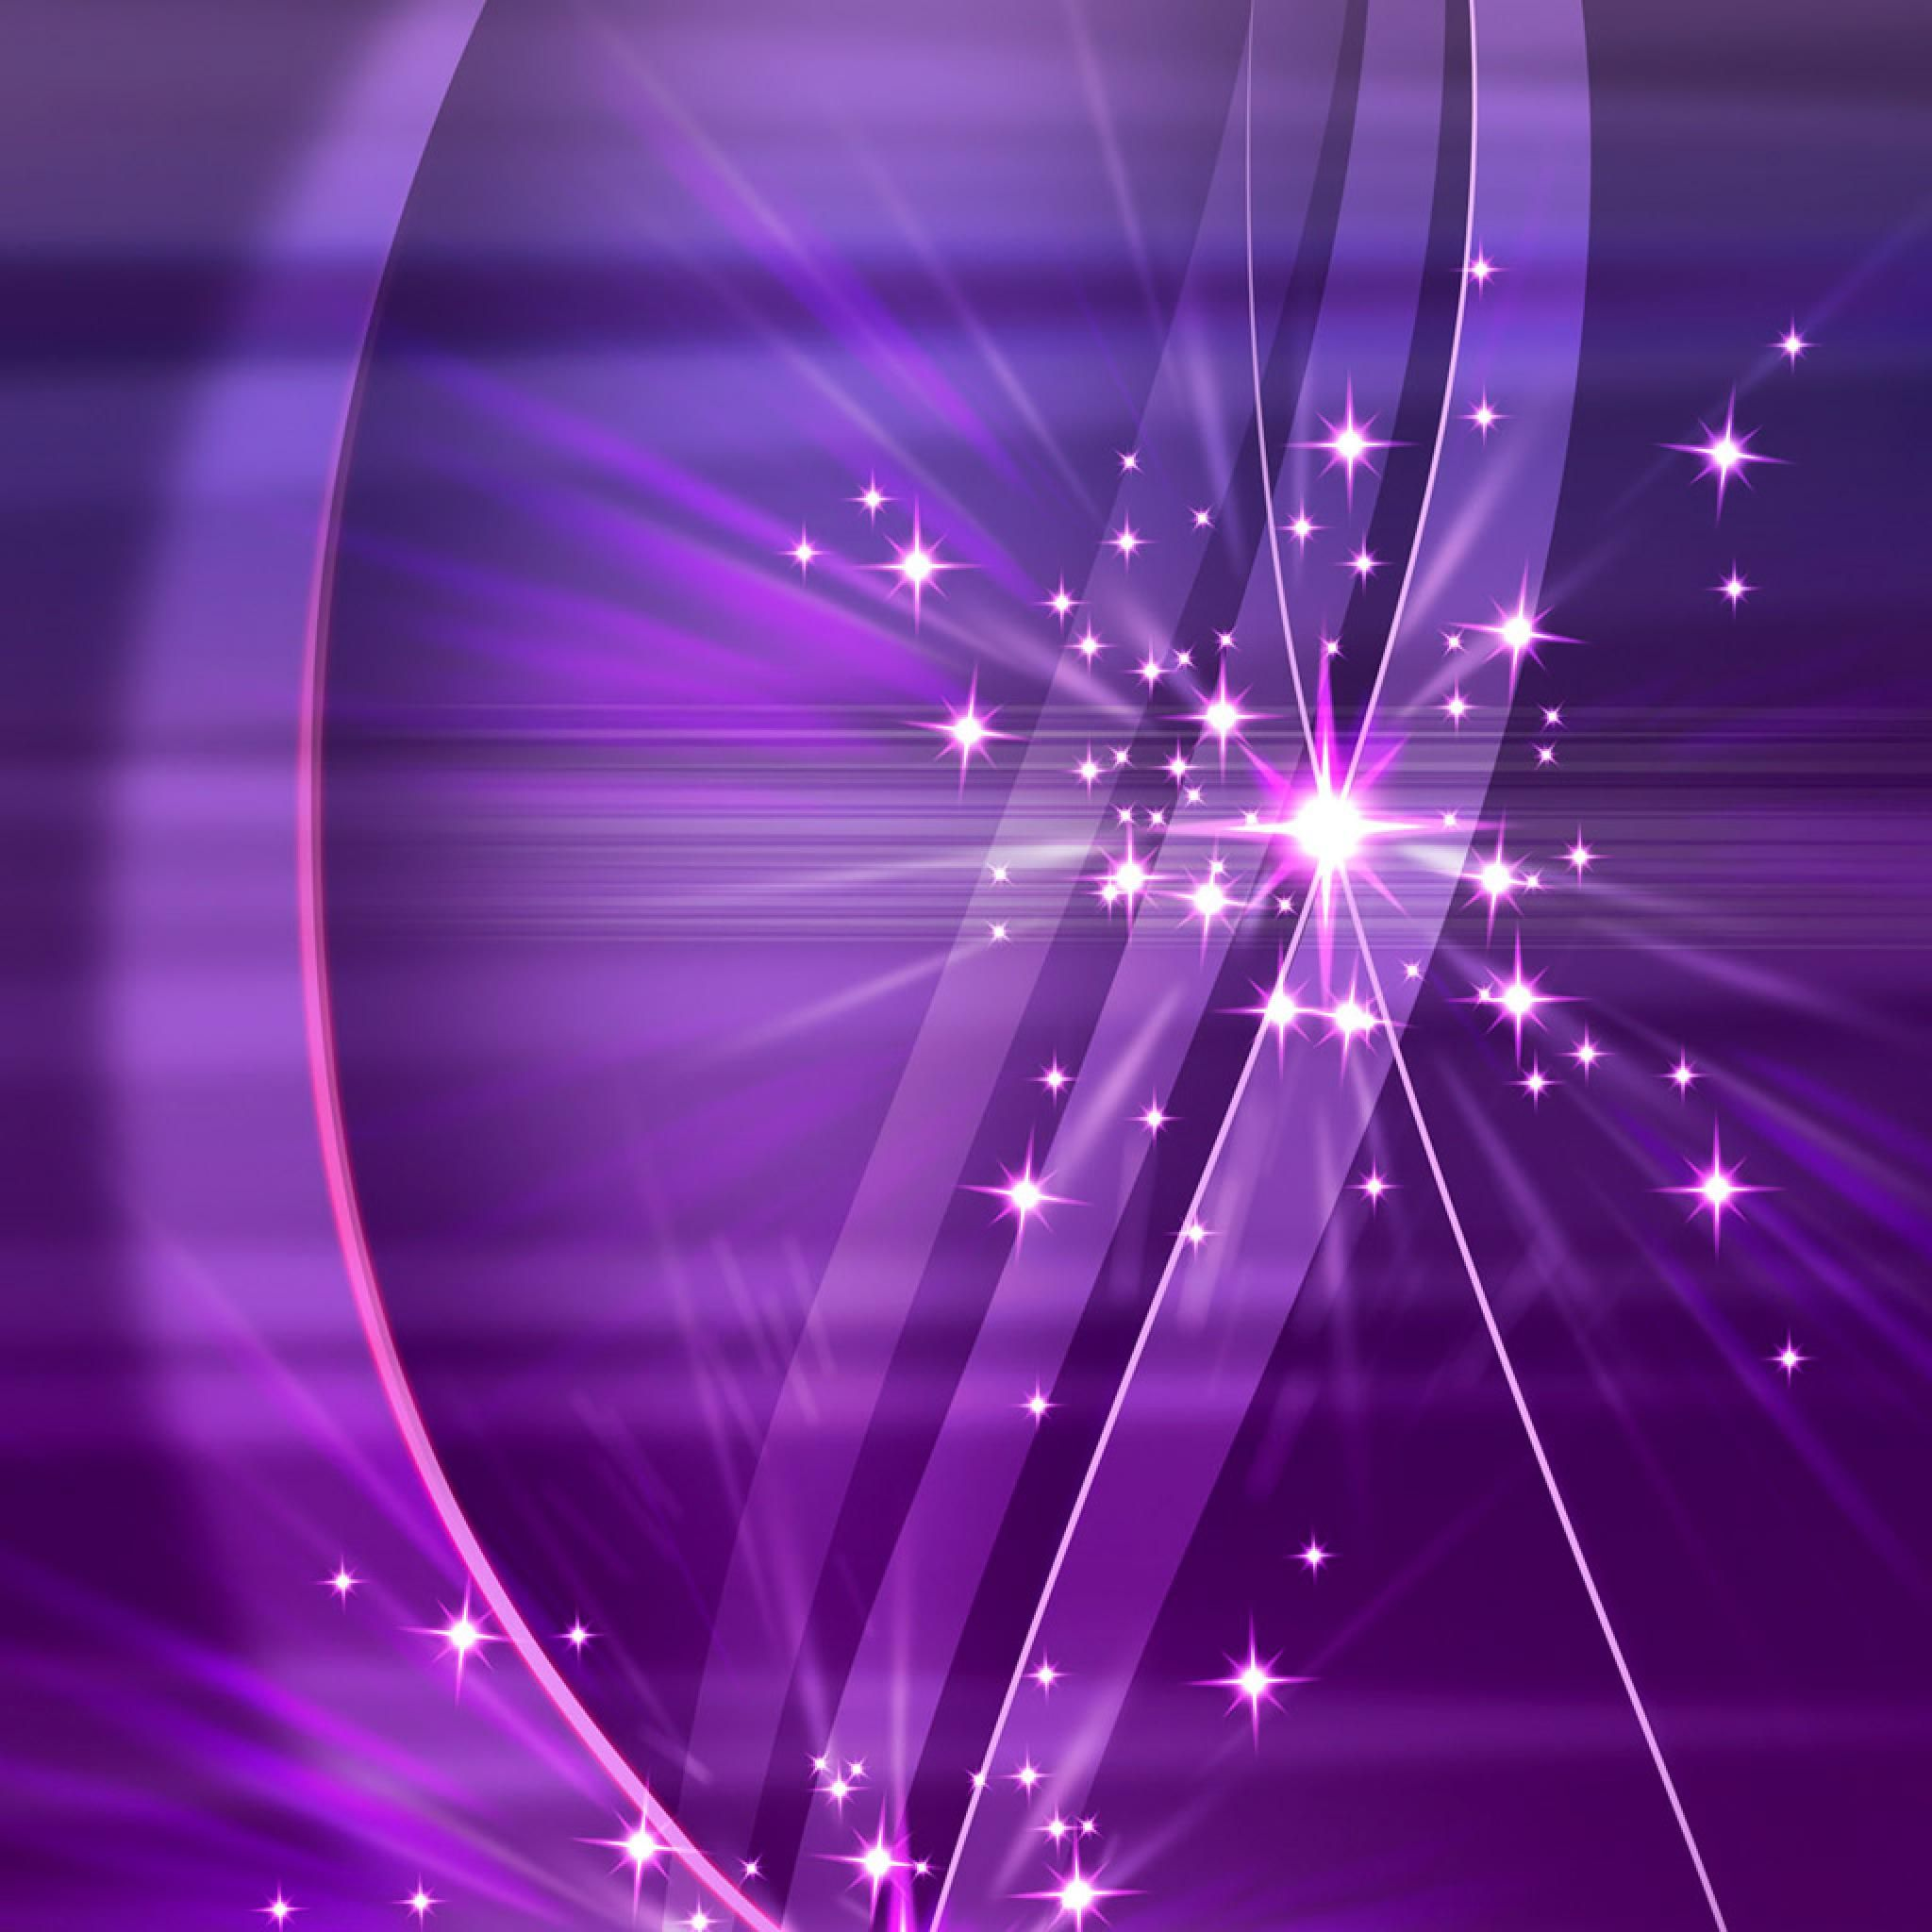 Abstract hd simply violet sparks 3d wallpapers wallpaper for Purple wallpaper 3d